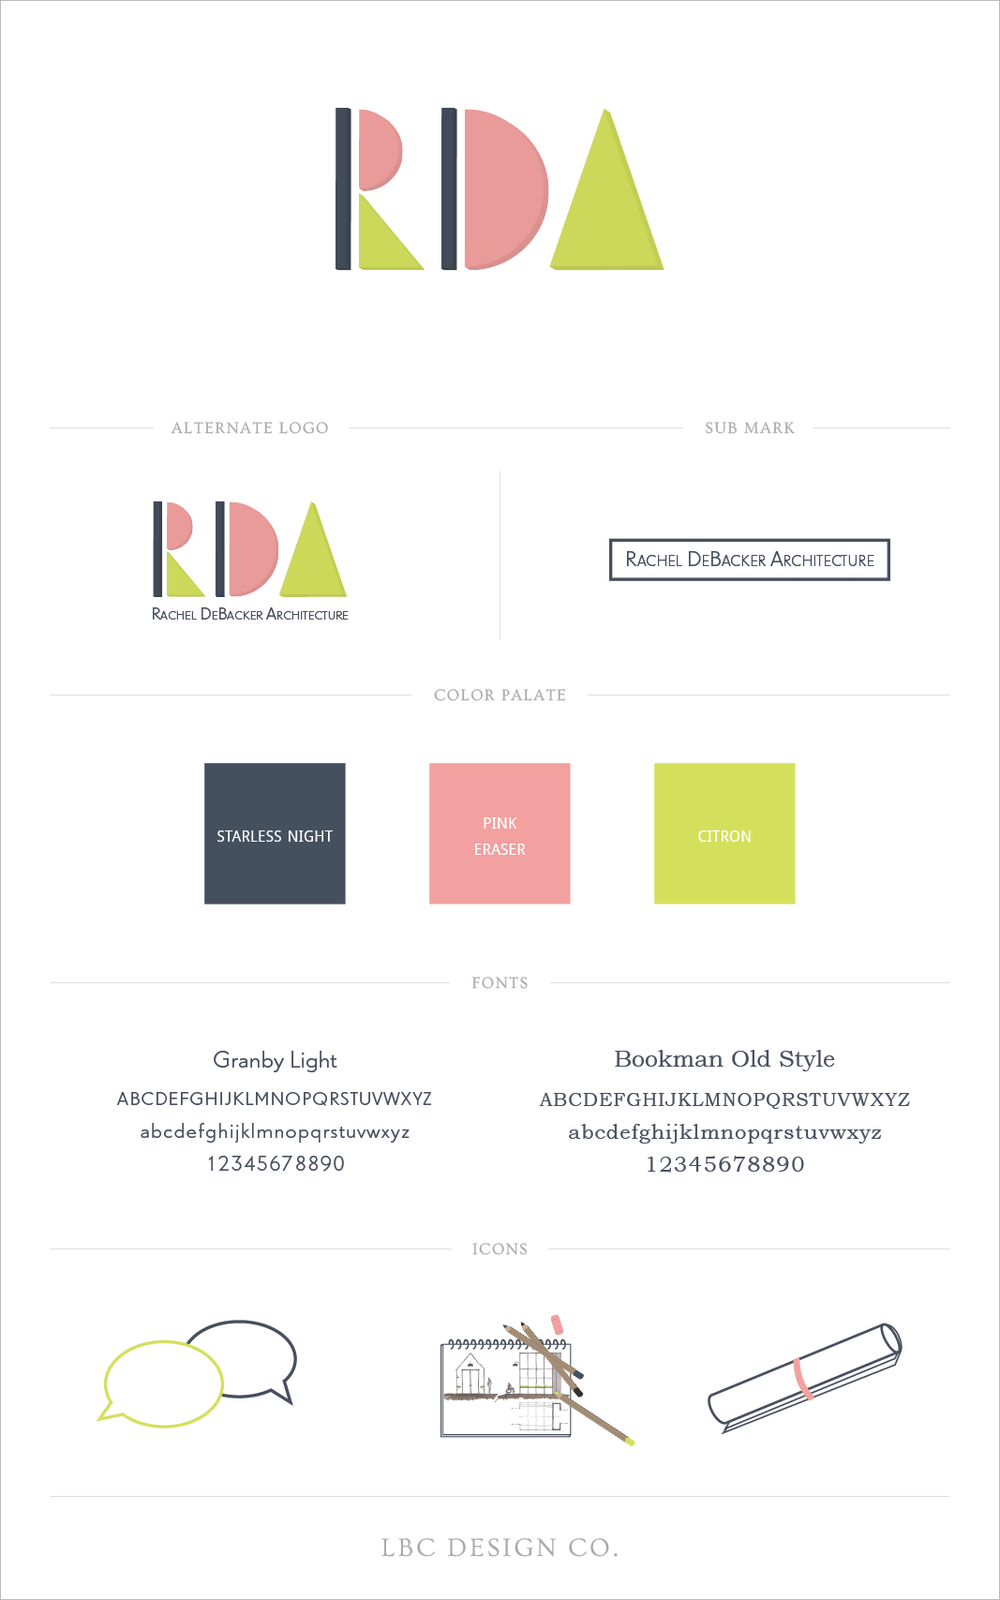 Rachel DeBacker Architecture-Style Guide